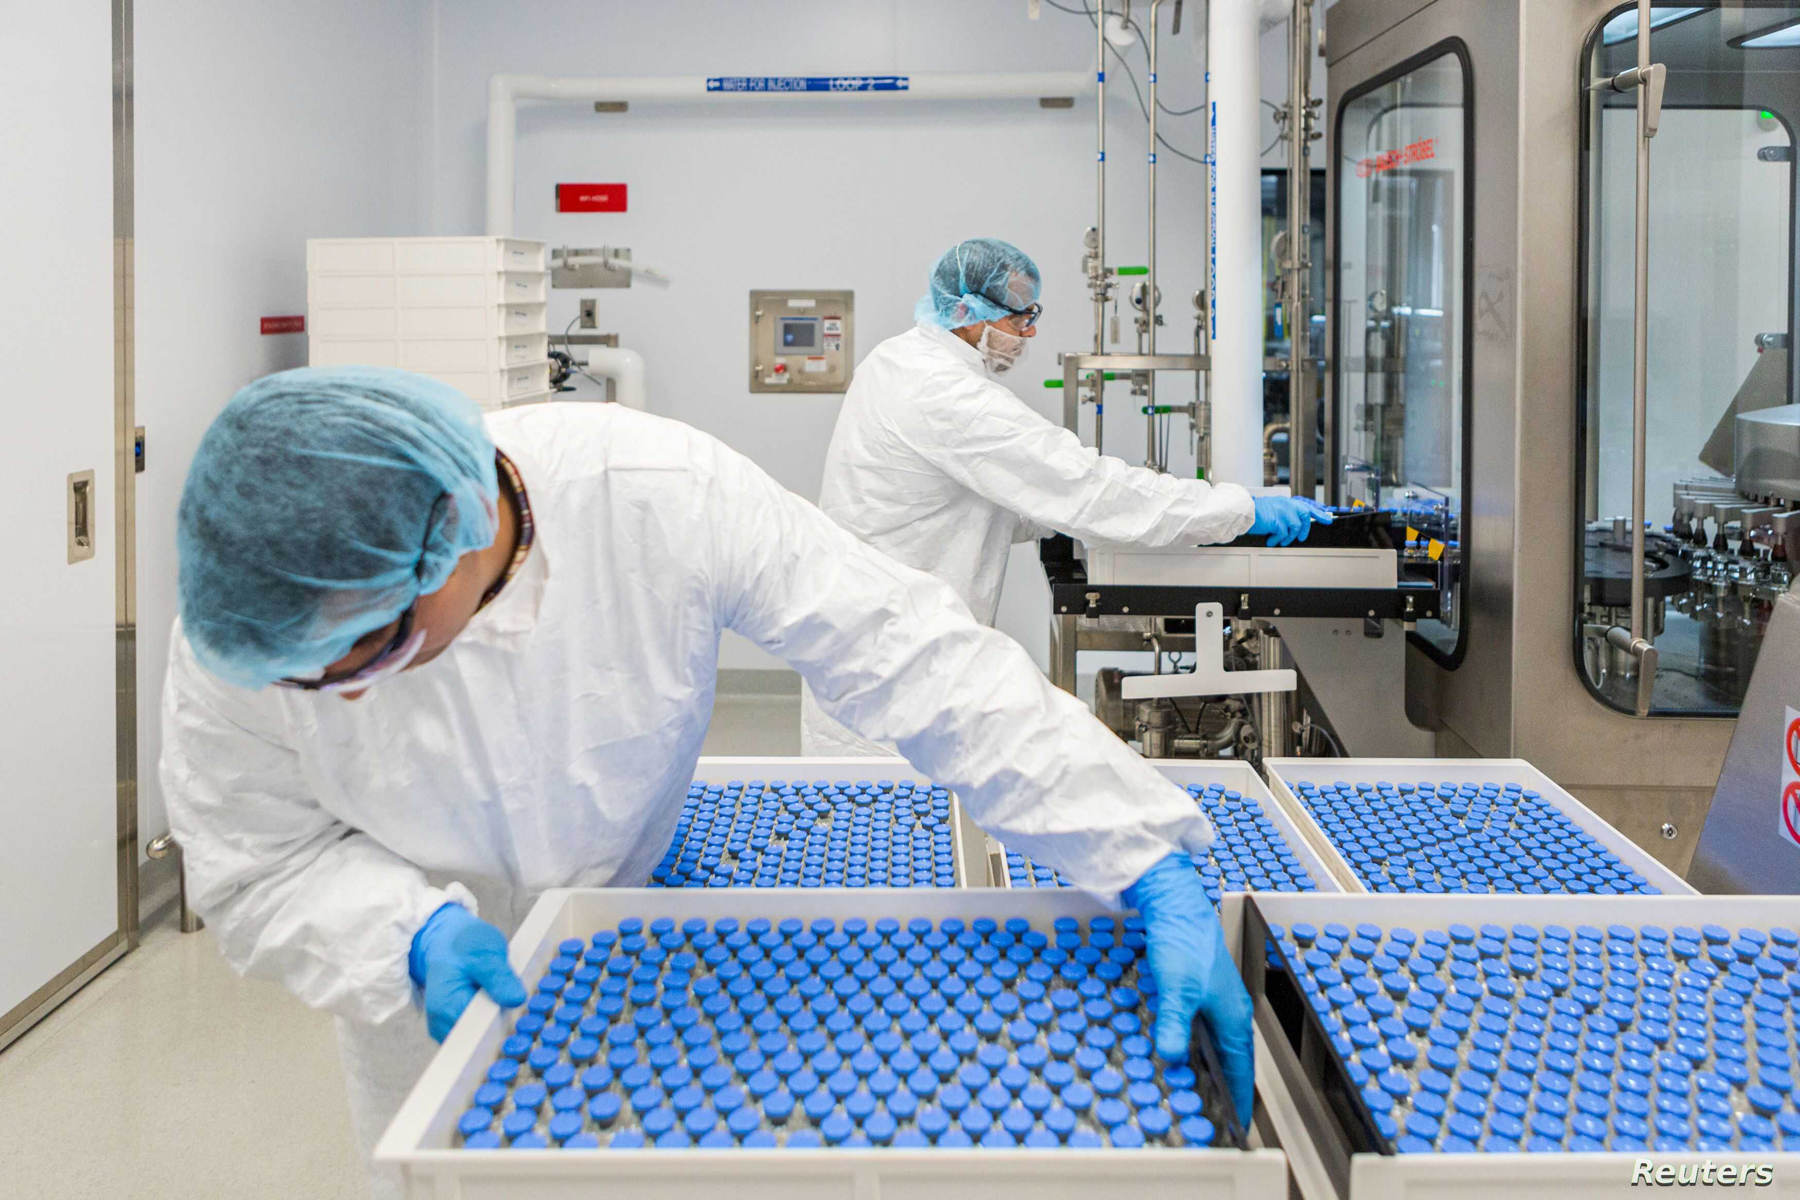 Lab technicians load filled vials of investigational coronavirus disease (COVID-19) treatment drug remdesivir at a Gilead Sciences facility in La Verne, California, U.S. March 18, 2020.